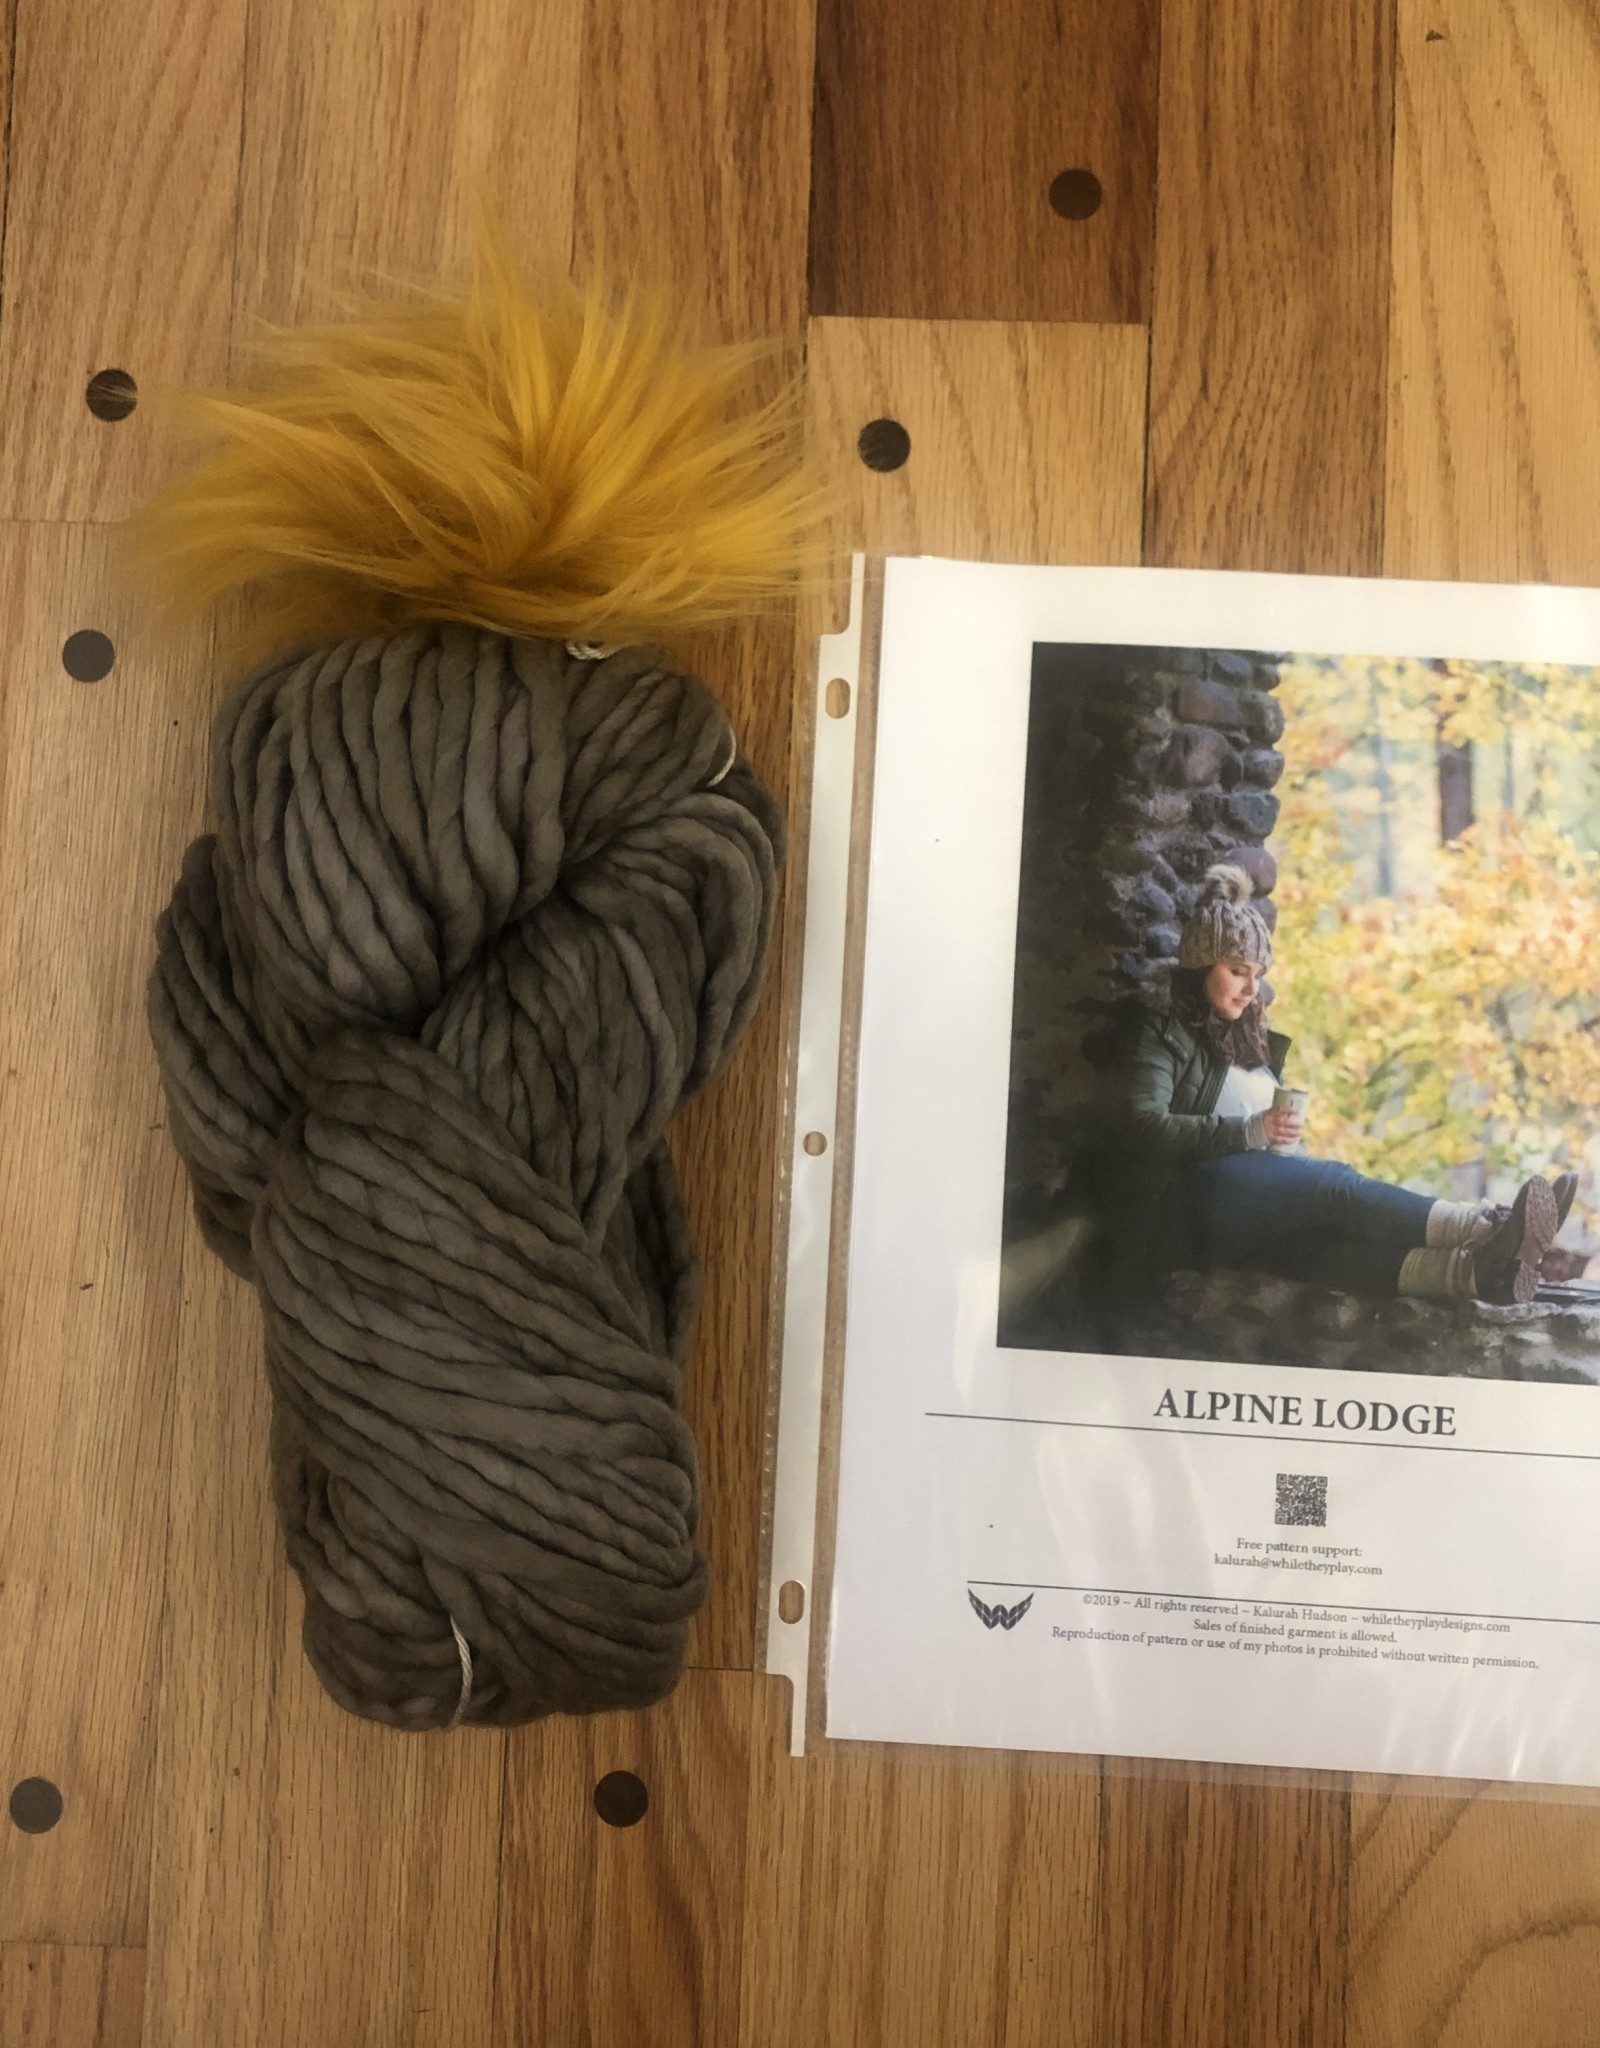 Purl2 Alpine Lodge Kit No. 2